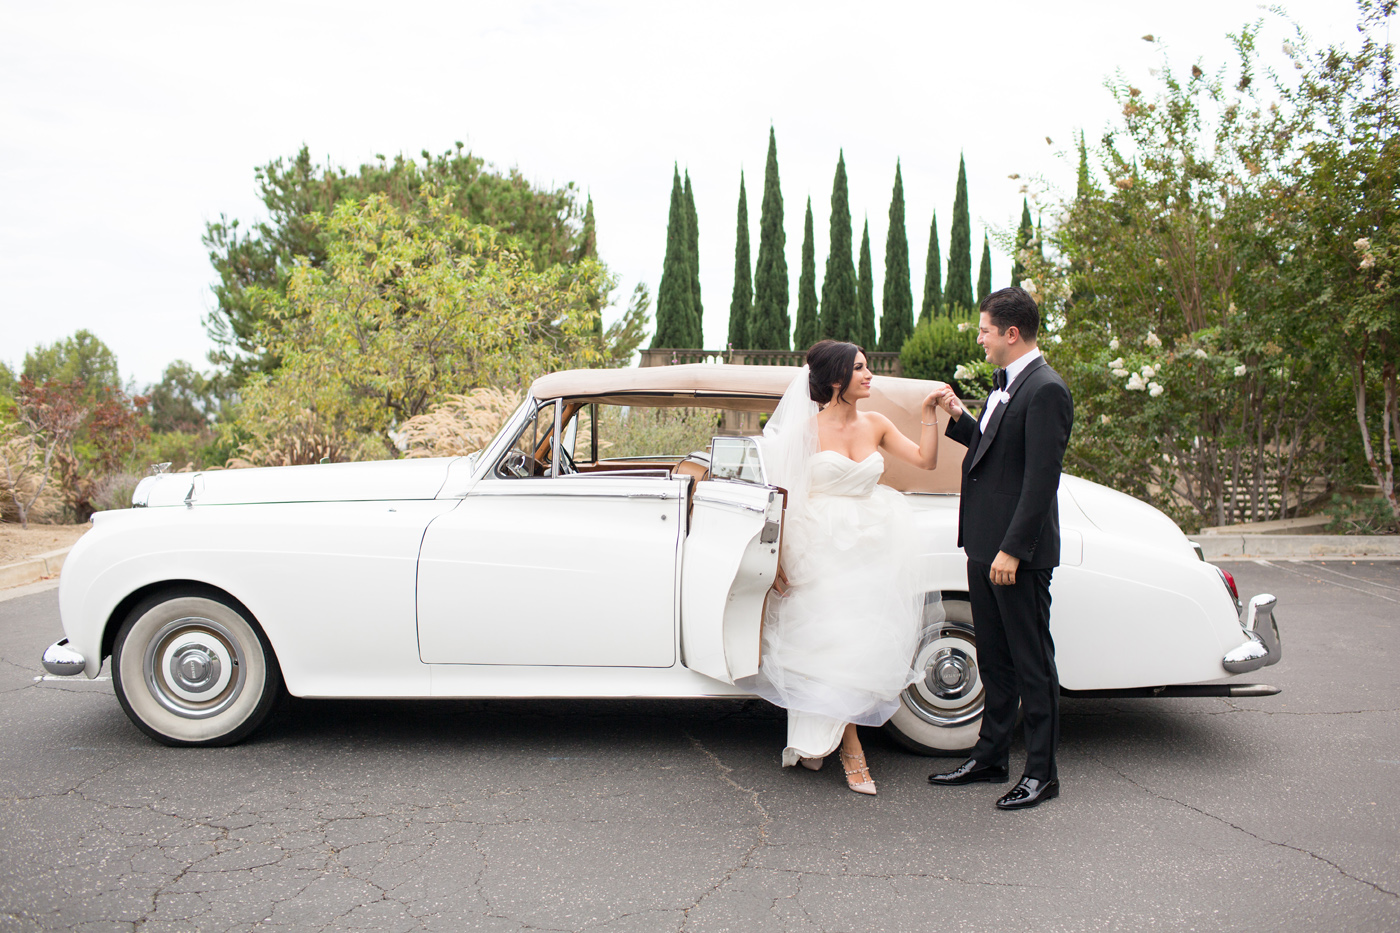 017DukePhotography_DukeImages_weddings_losangeles.jpg